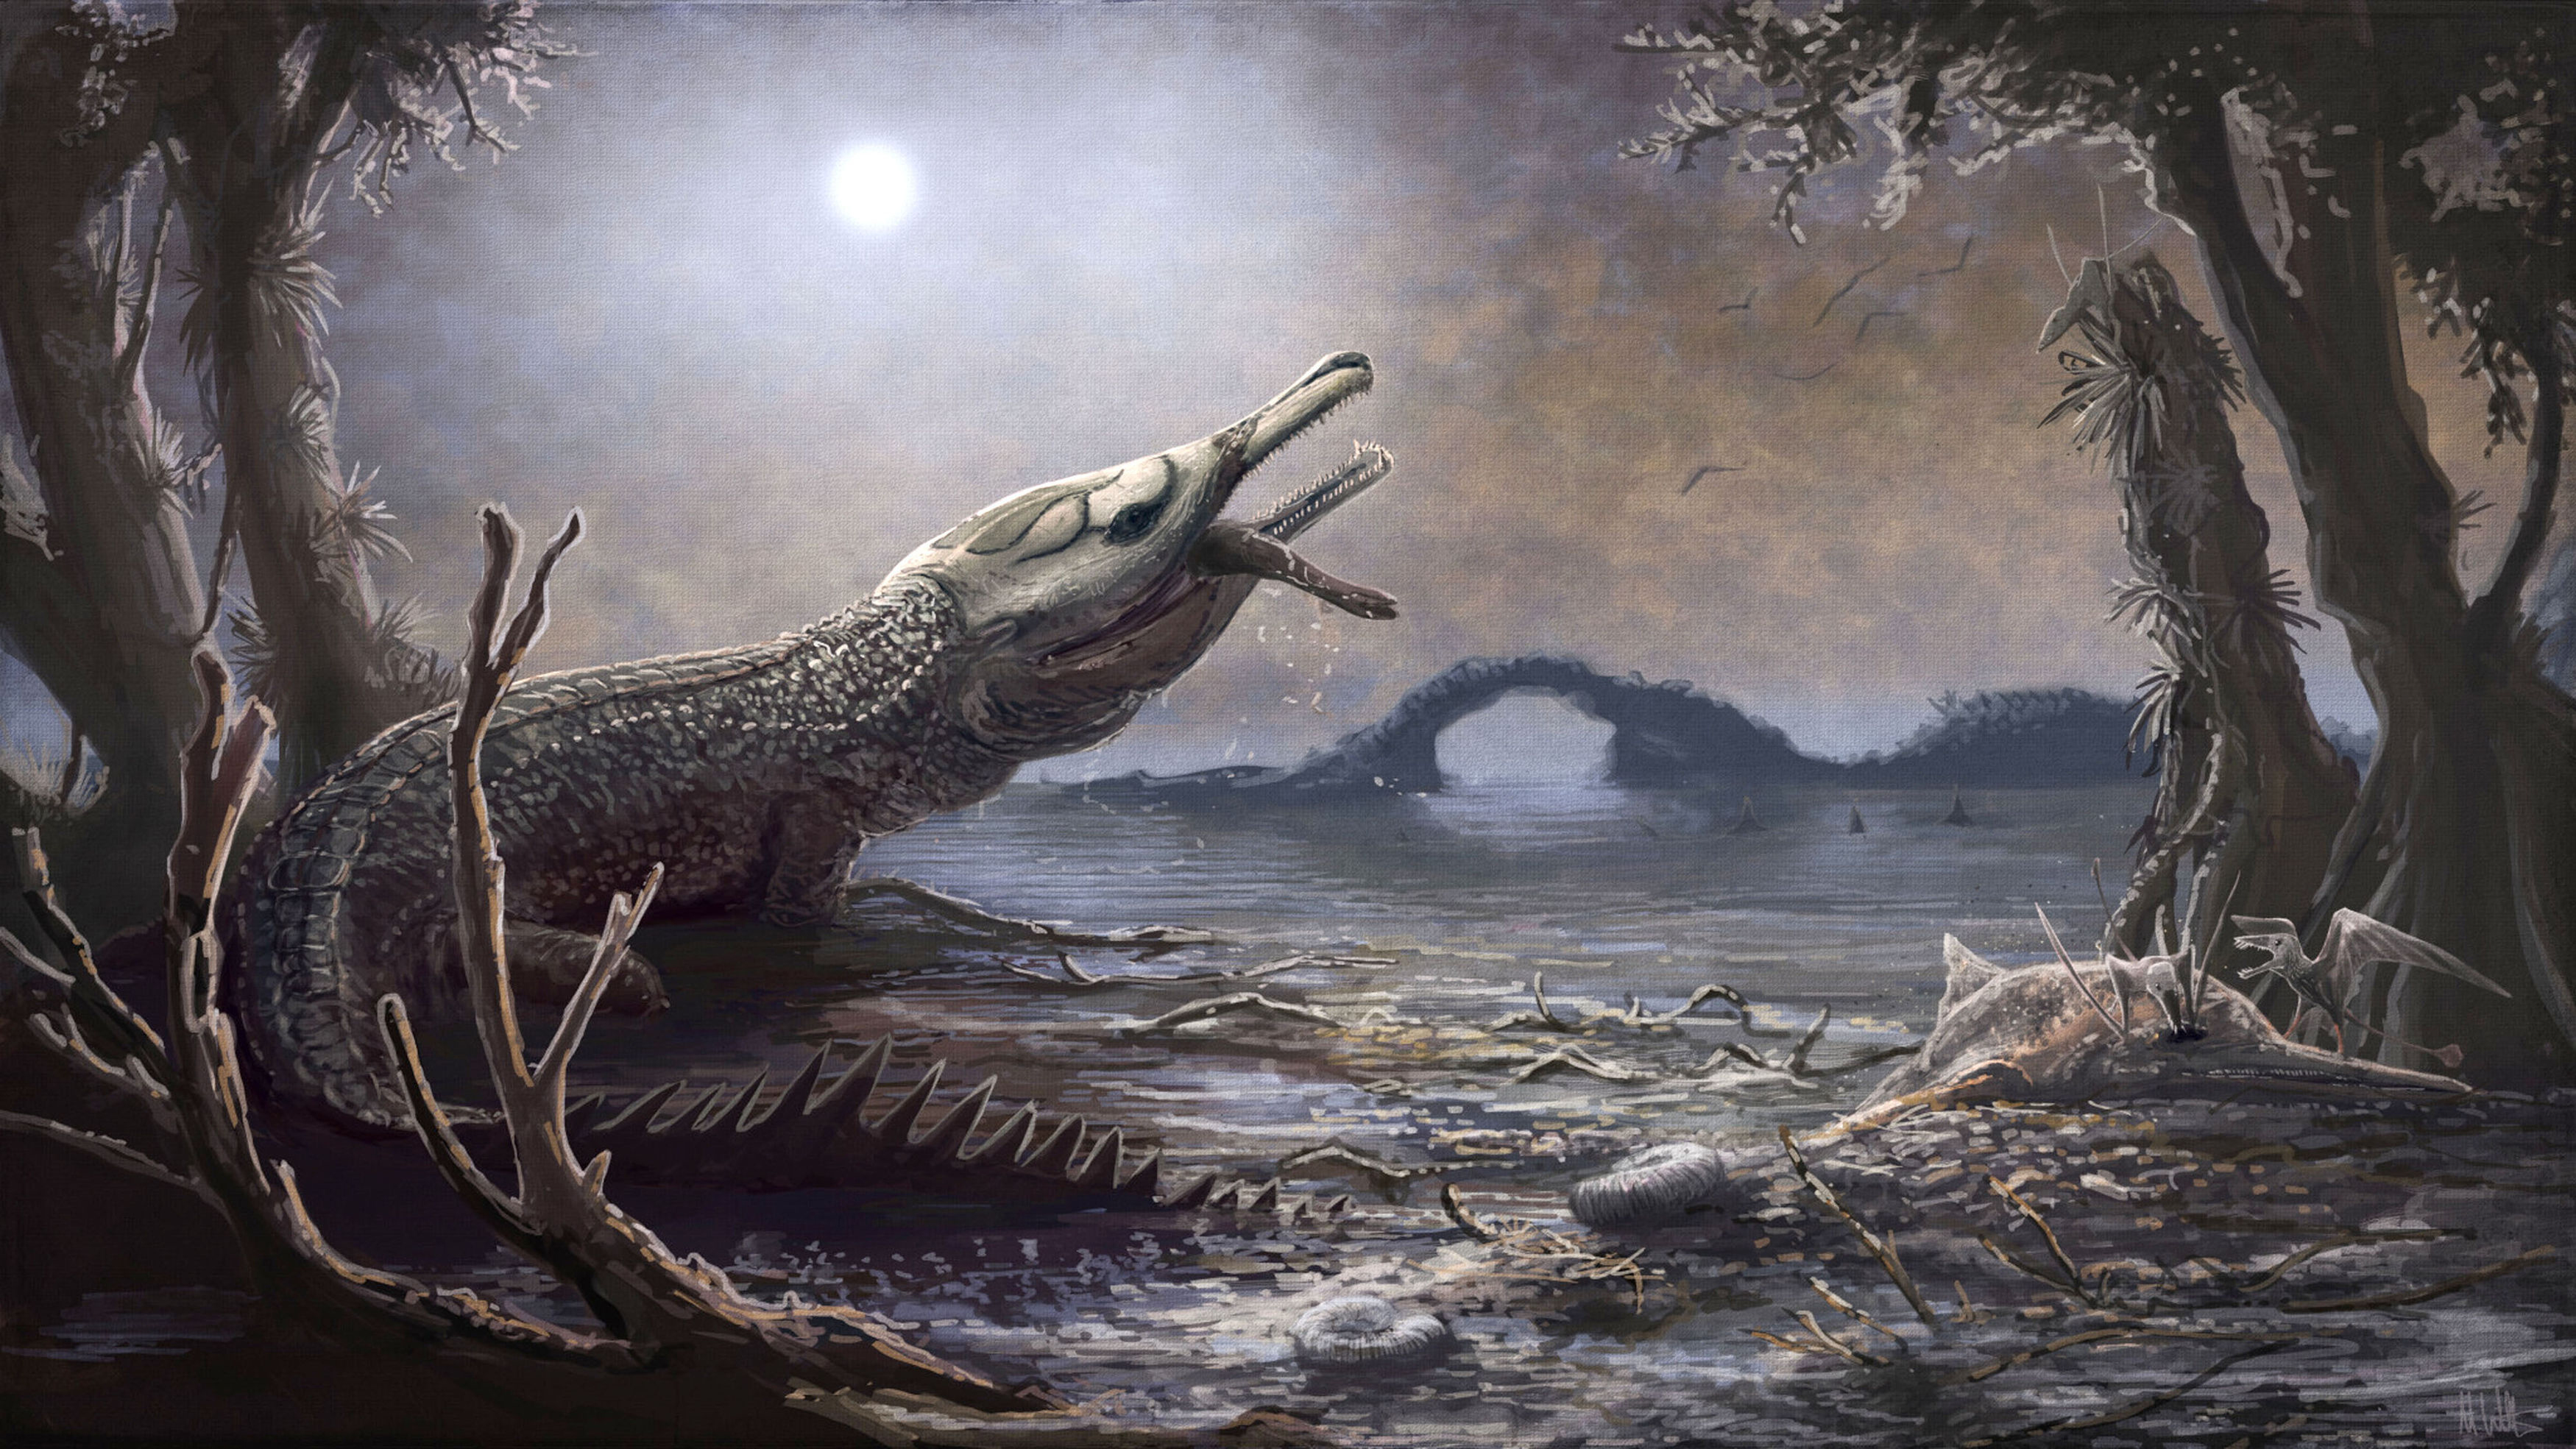 Jurassic crocodile named after Motorhead frontman